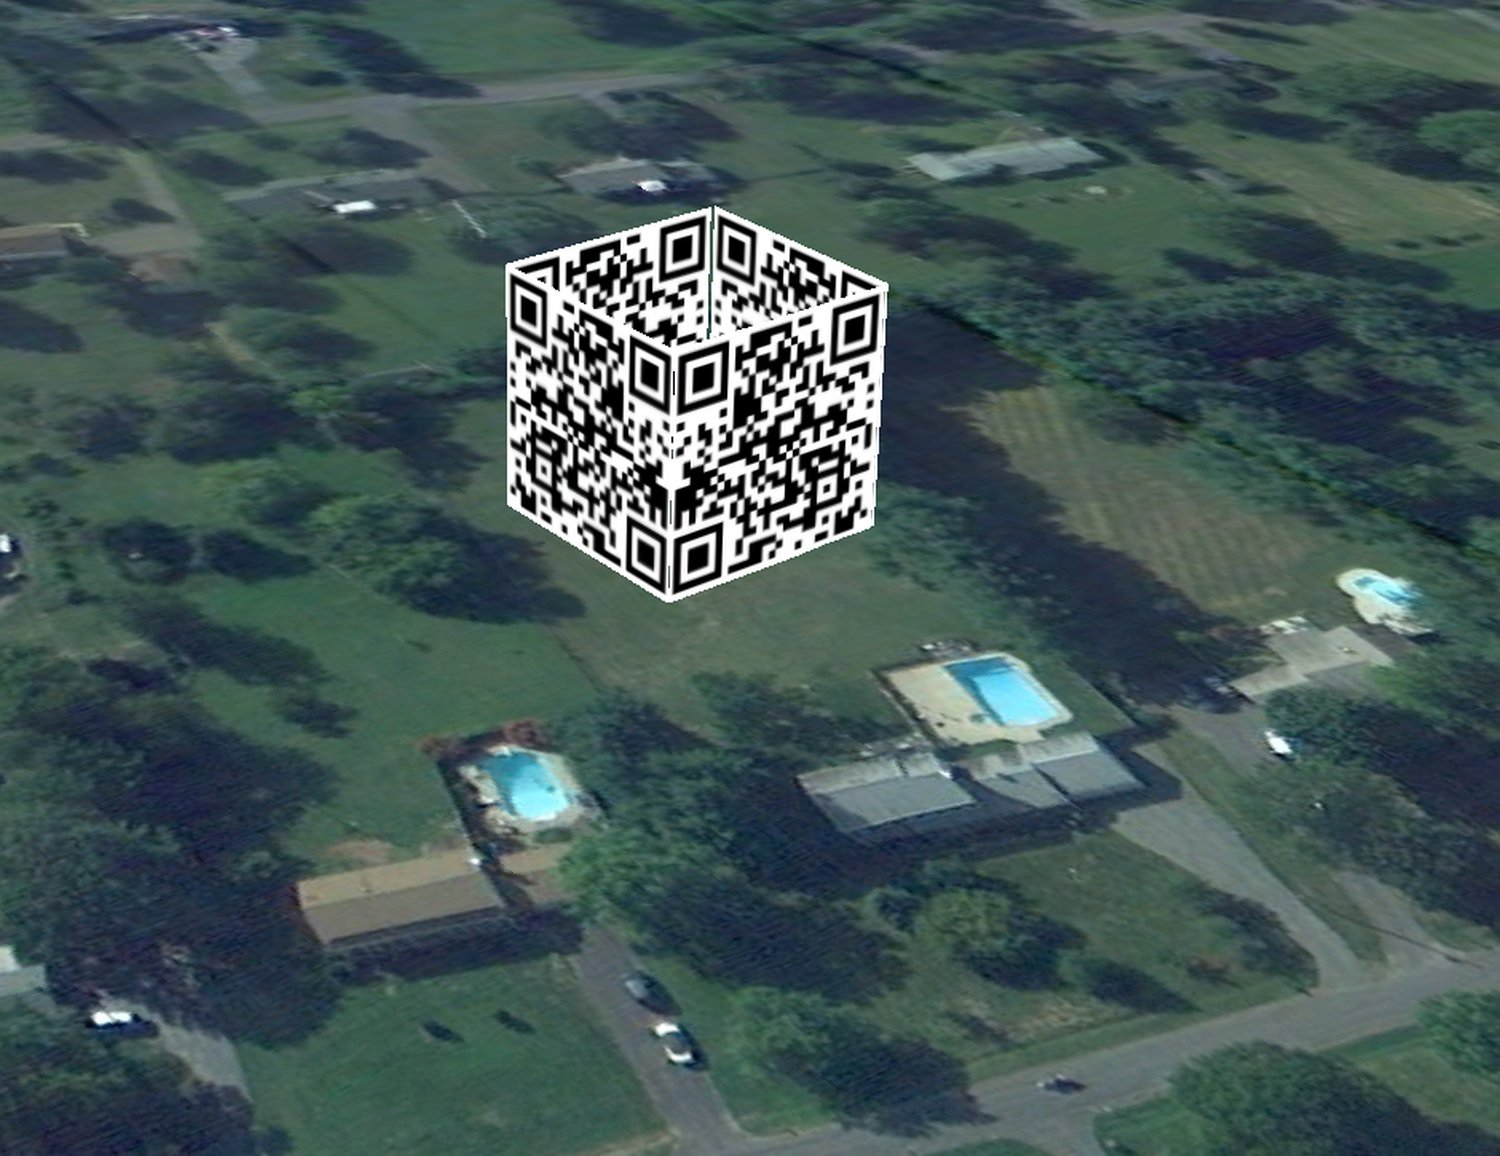 - Here, the QR cube is sitting on the lawn behind my house. -  - Art and the Zen of QR Codes - QaRt - making art from QR codes. - - art  - photography - by Tony Karp